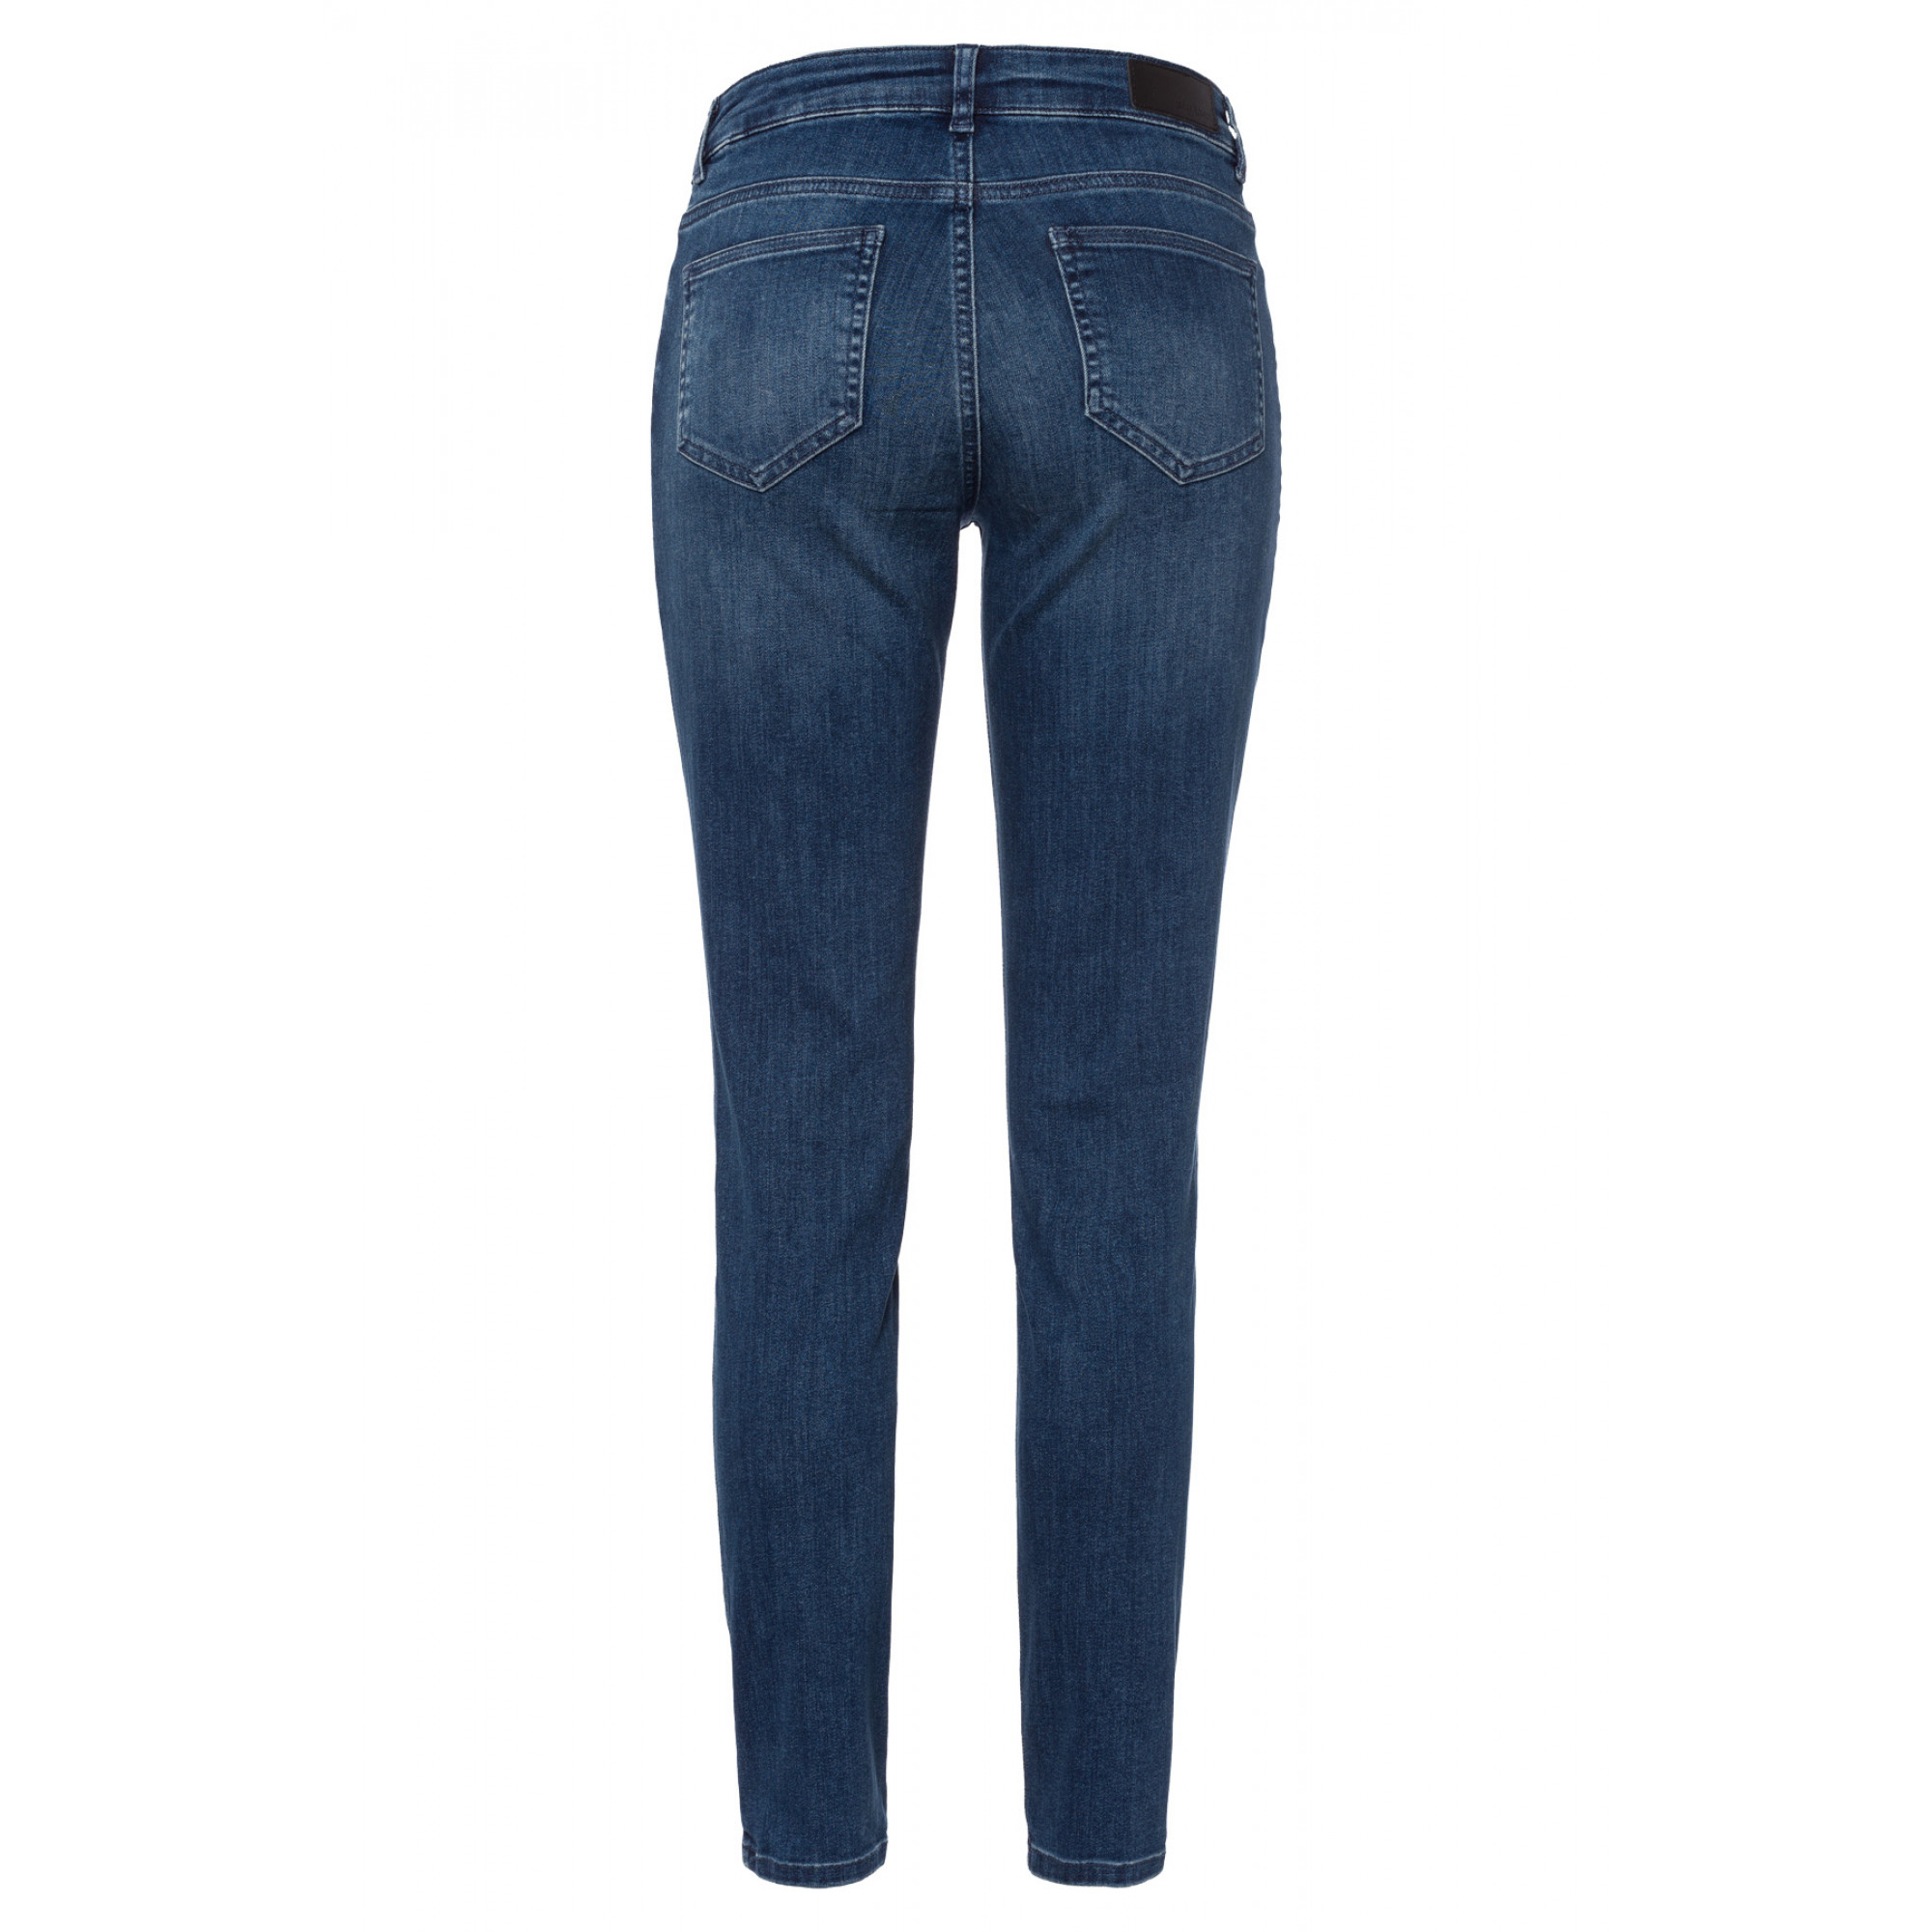 Jeans, Five Pocket, Hazel 91094201-0962 2